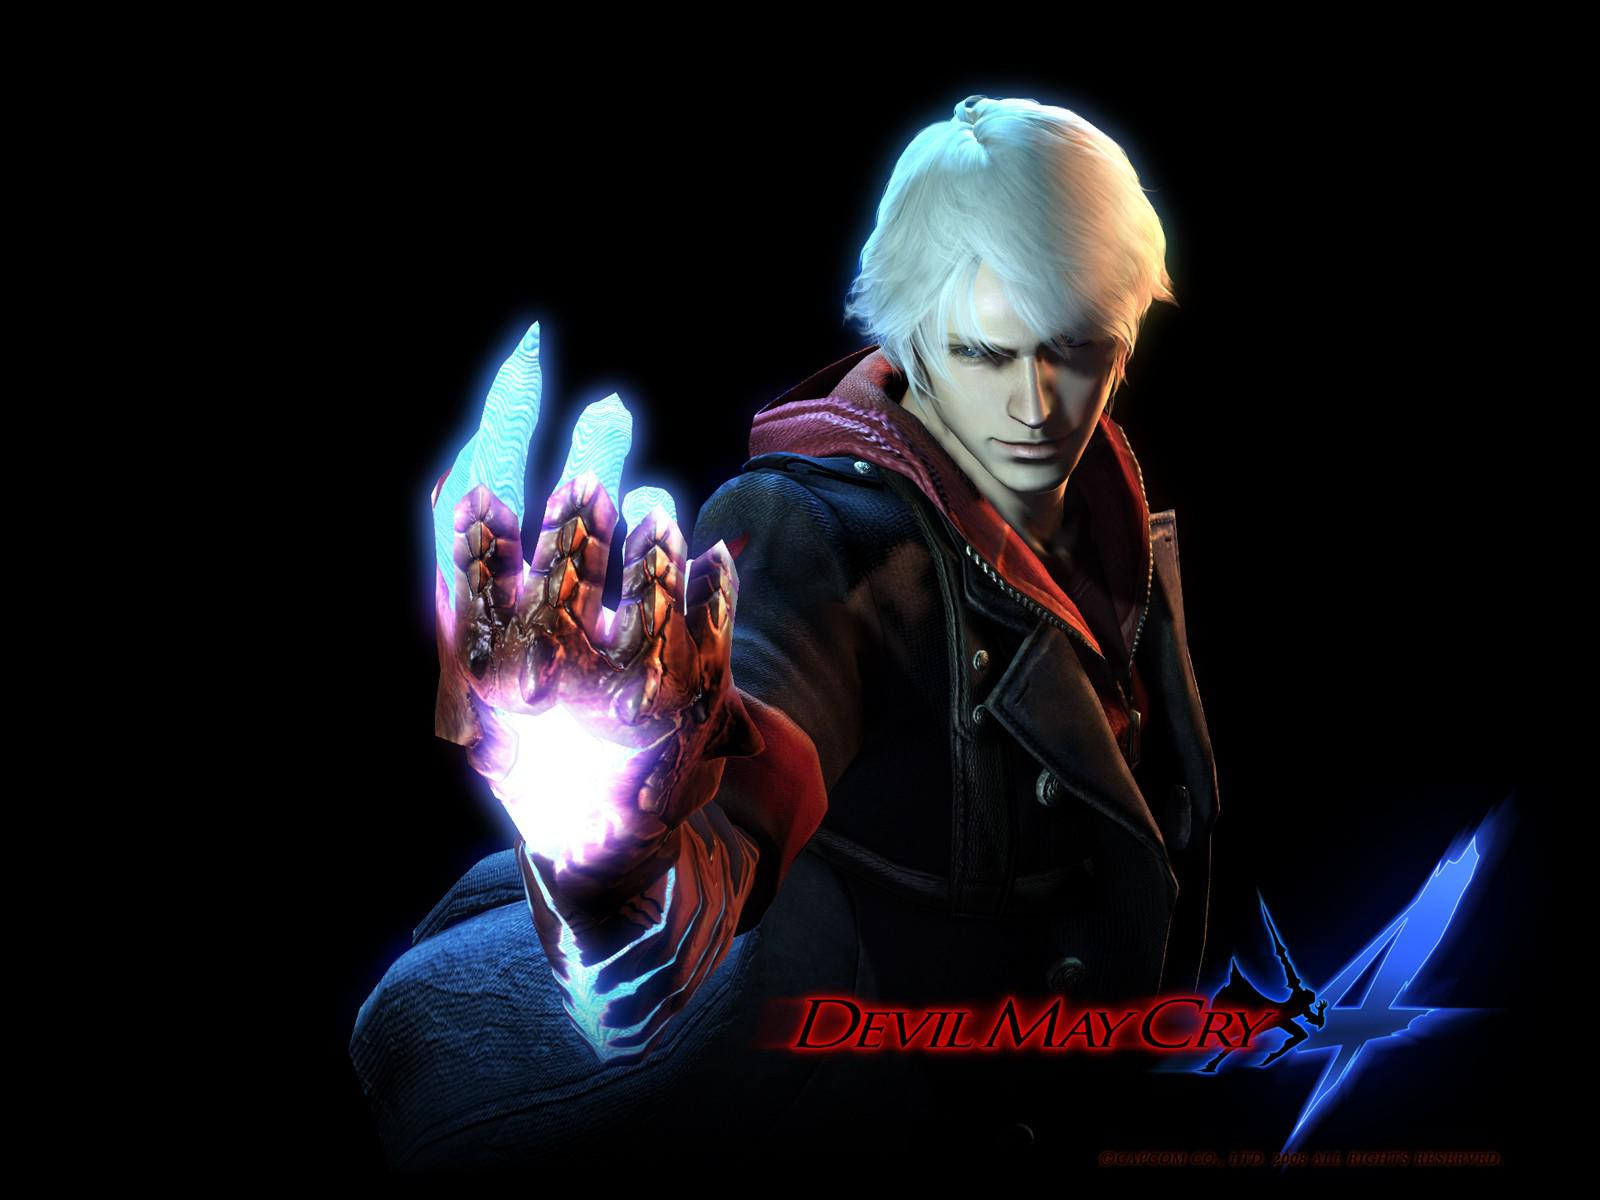 Devil May Cry Fond décran K Fonds